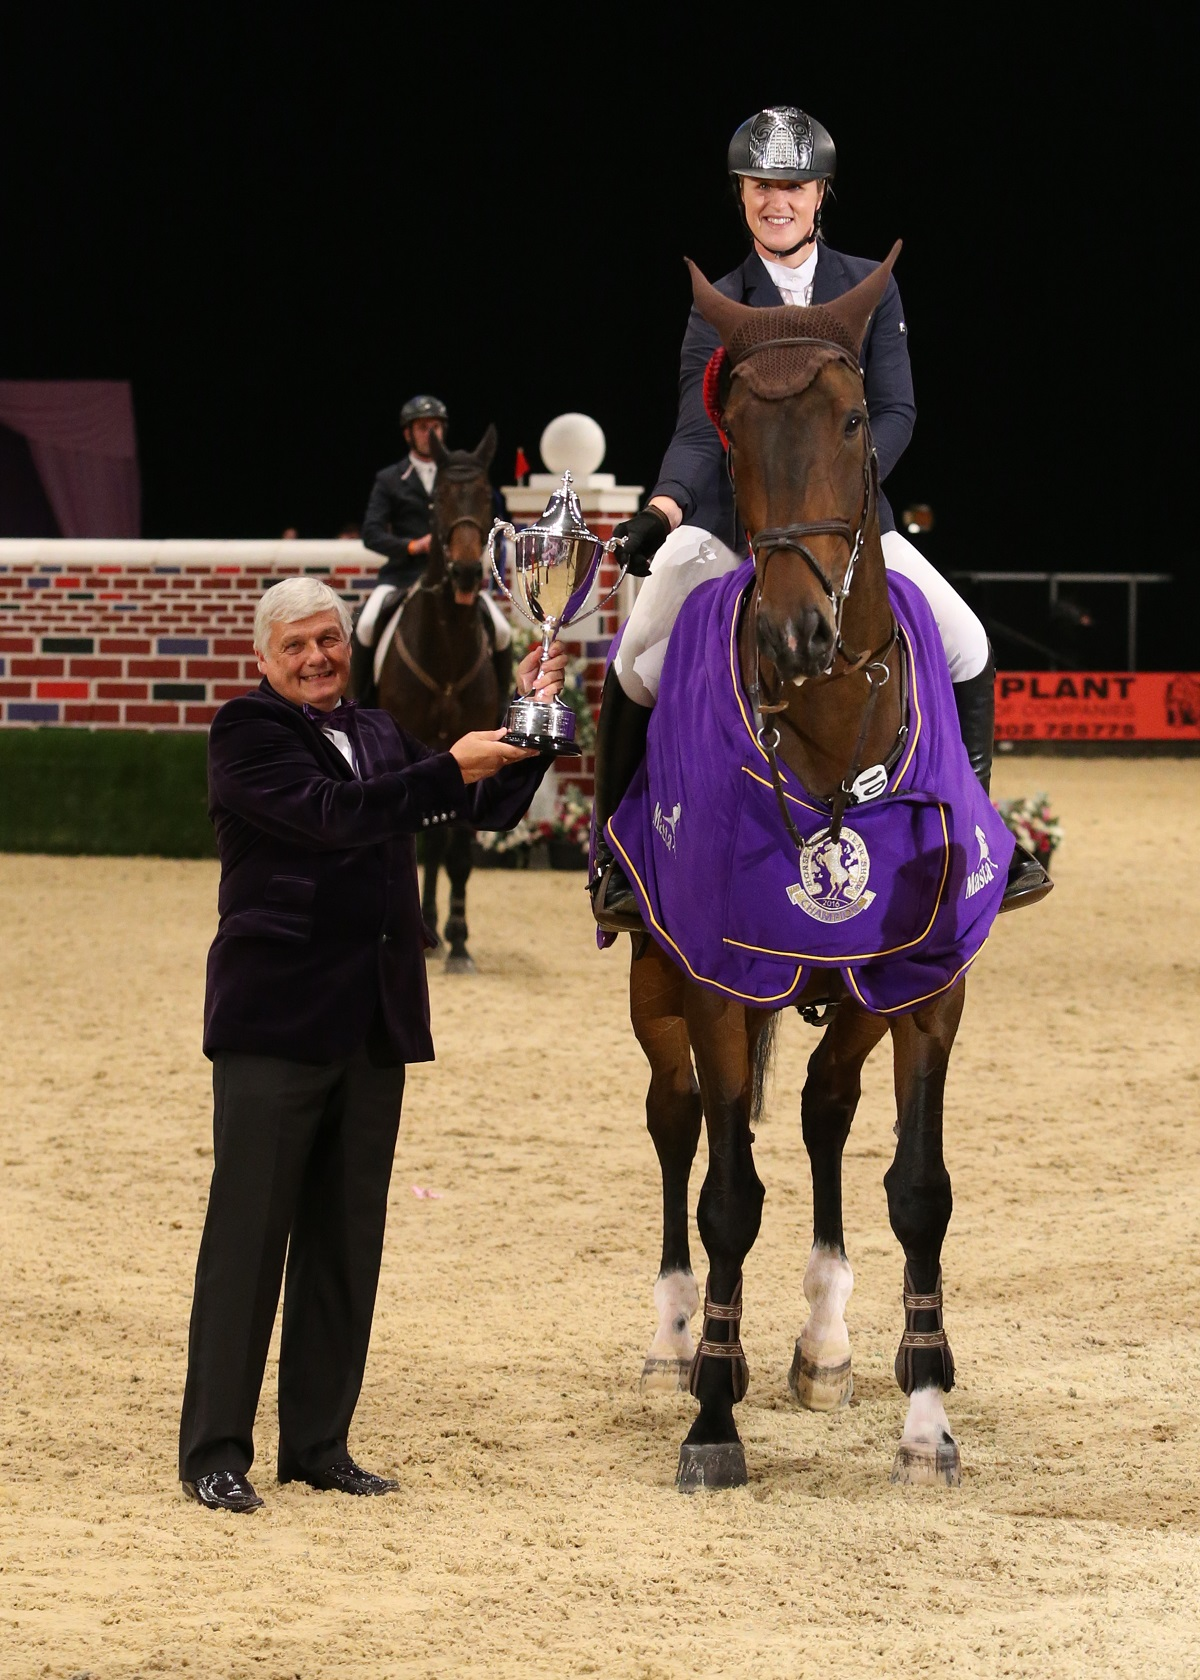 Thistledown Puissance Julian Portch 3 1 - An incredible win for Holly Smith in the Thistledown Puissance at Horse of the Year Show